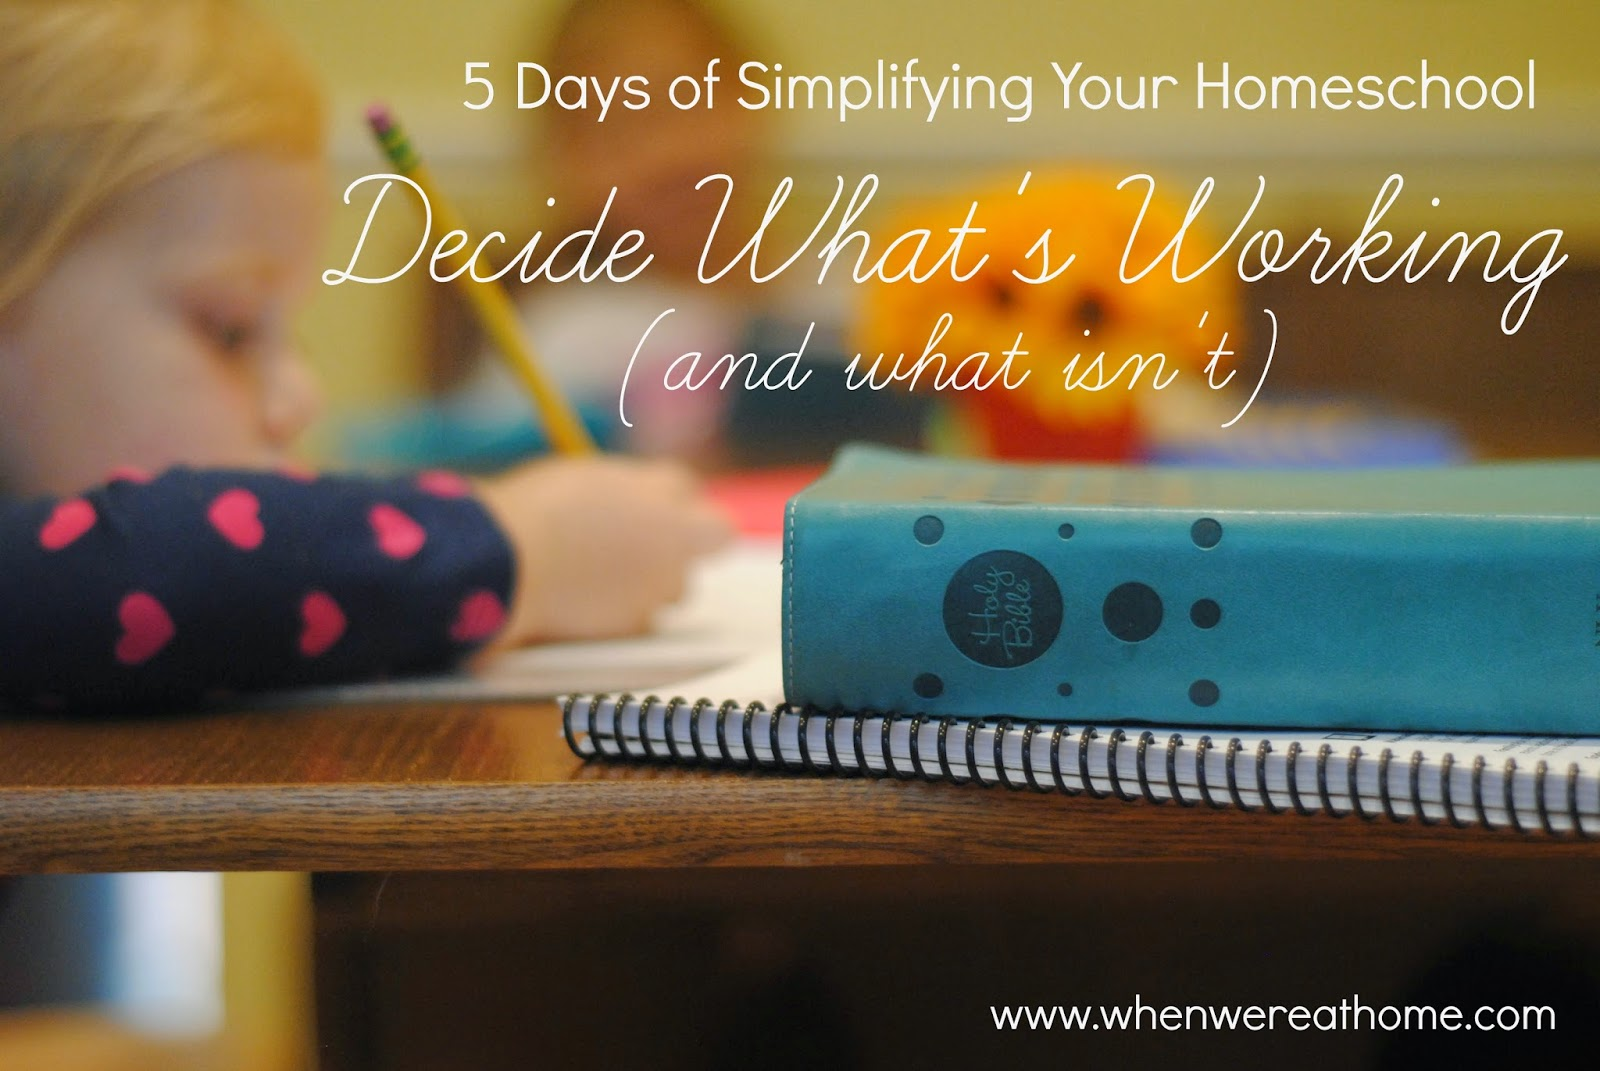 Simplifying Your Homeschool: Decide What's Working (and what isn't)